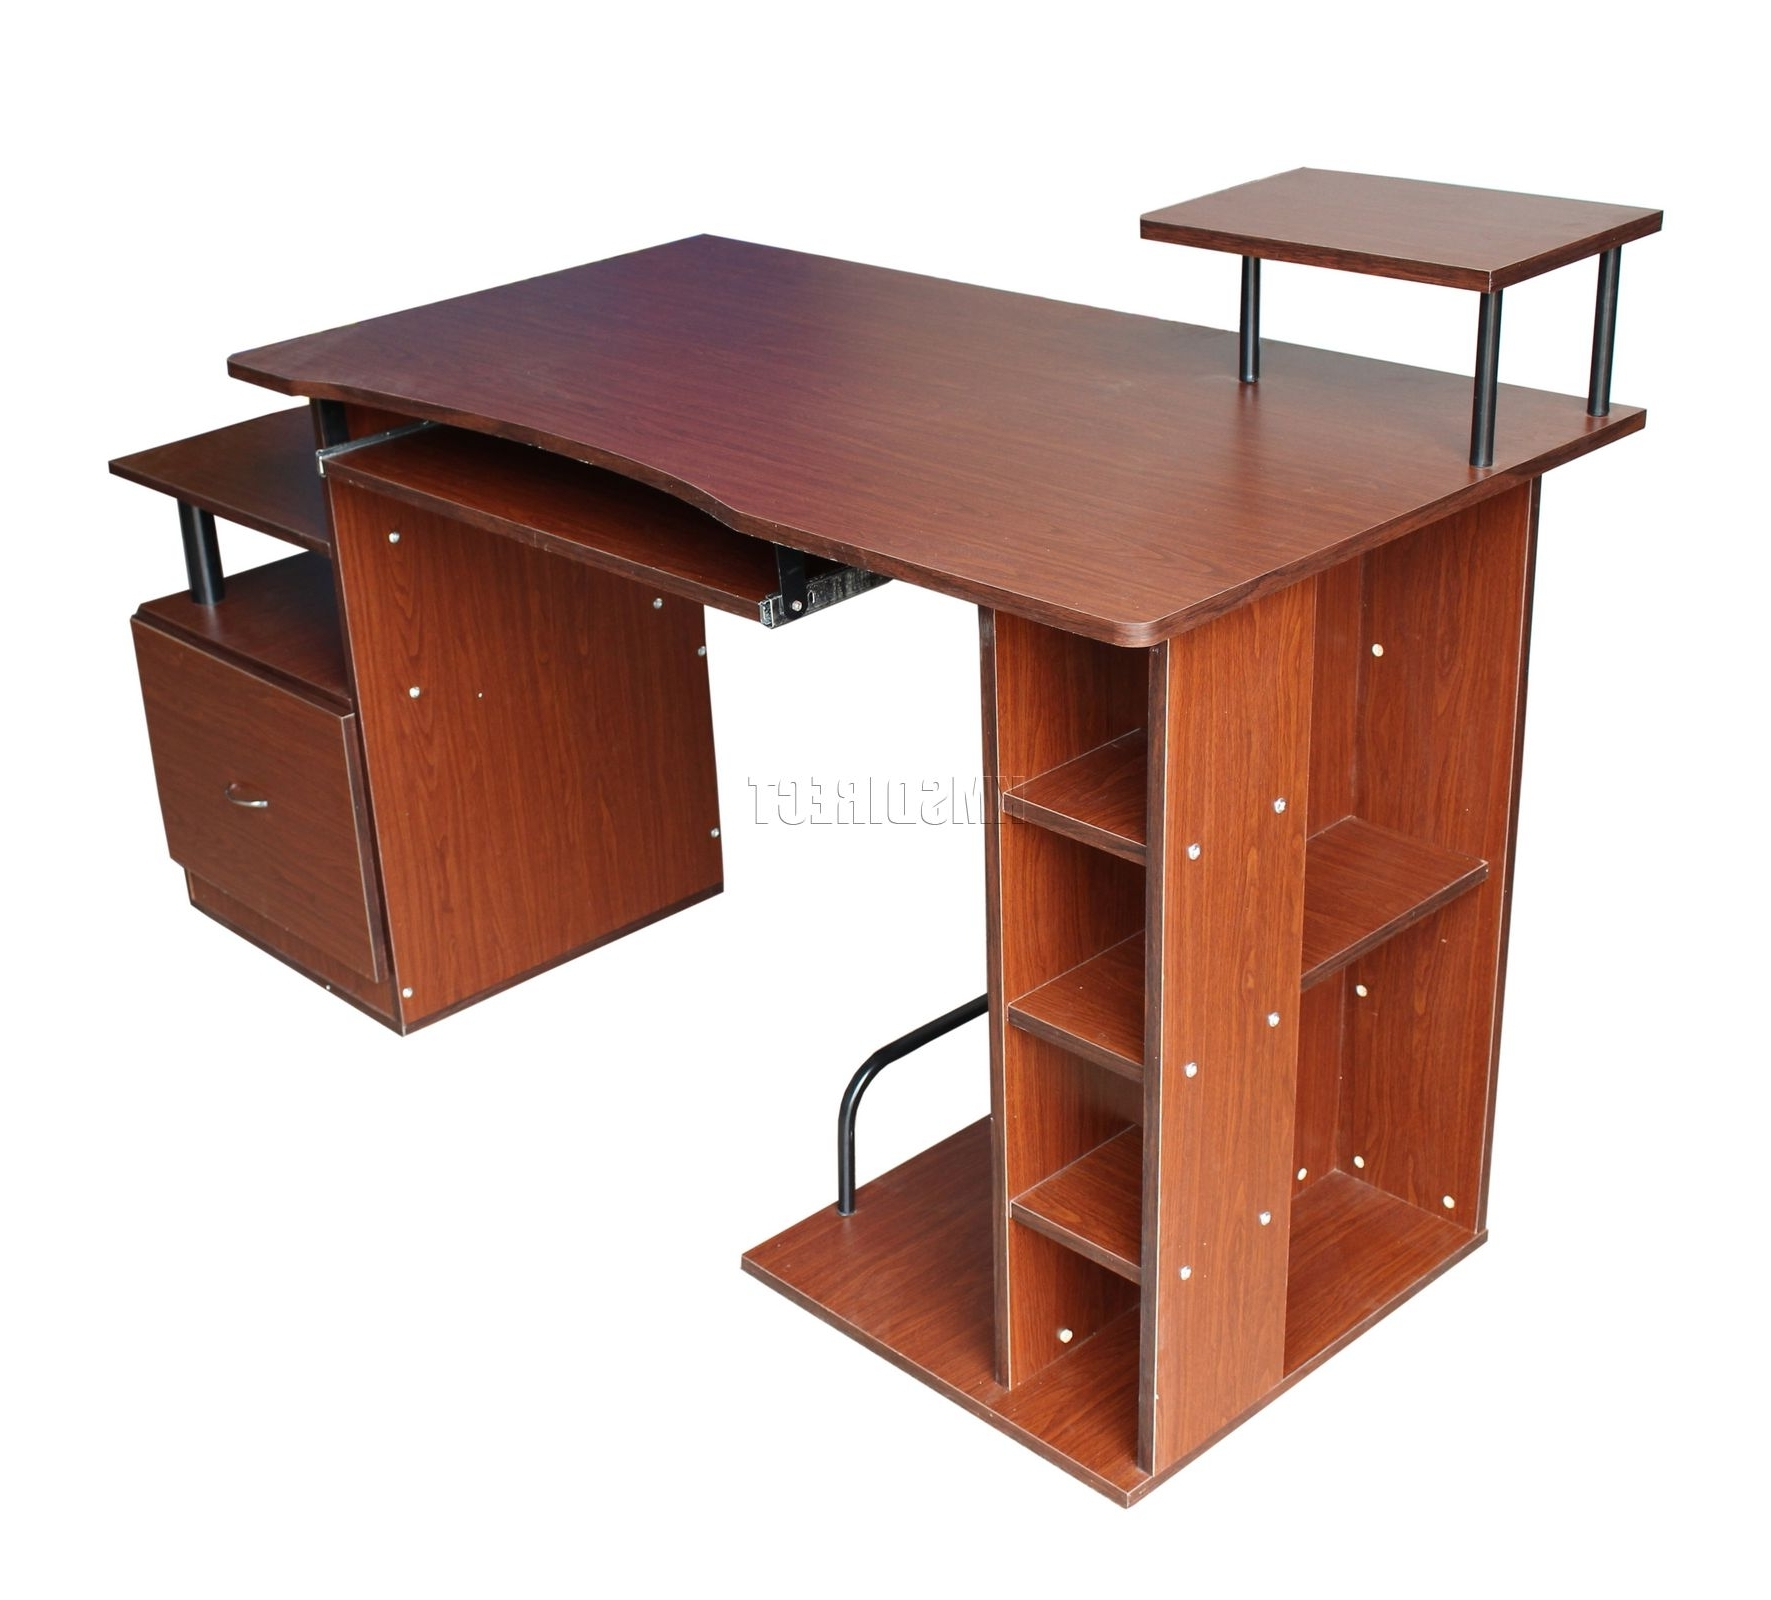 Office Depot Desks | Computer Desk Office Depot | Office Depot Corner Desk